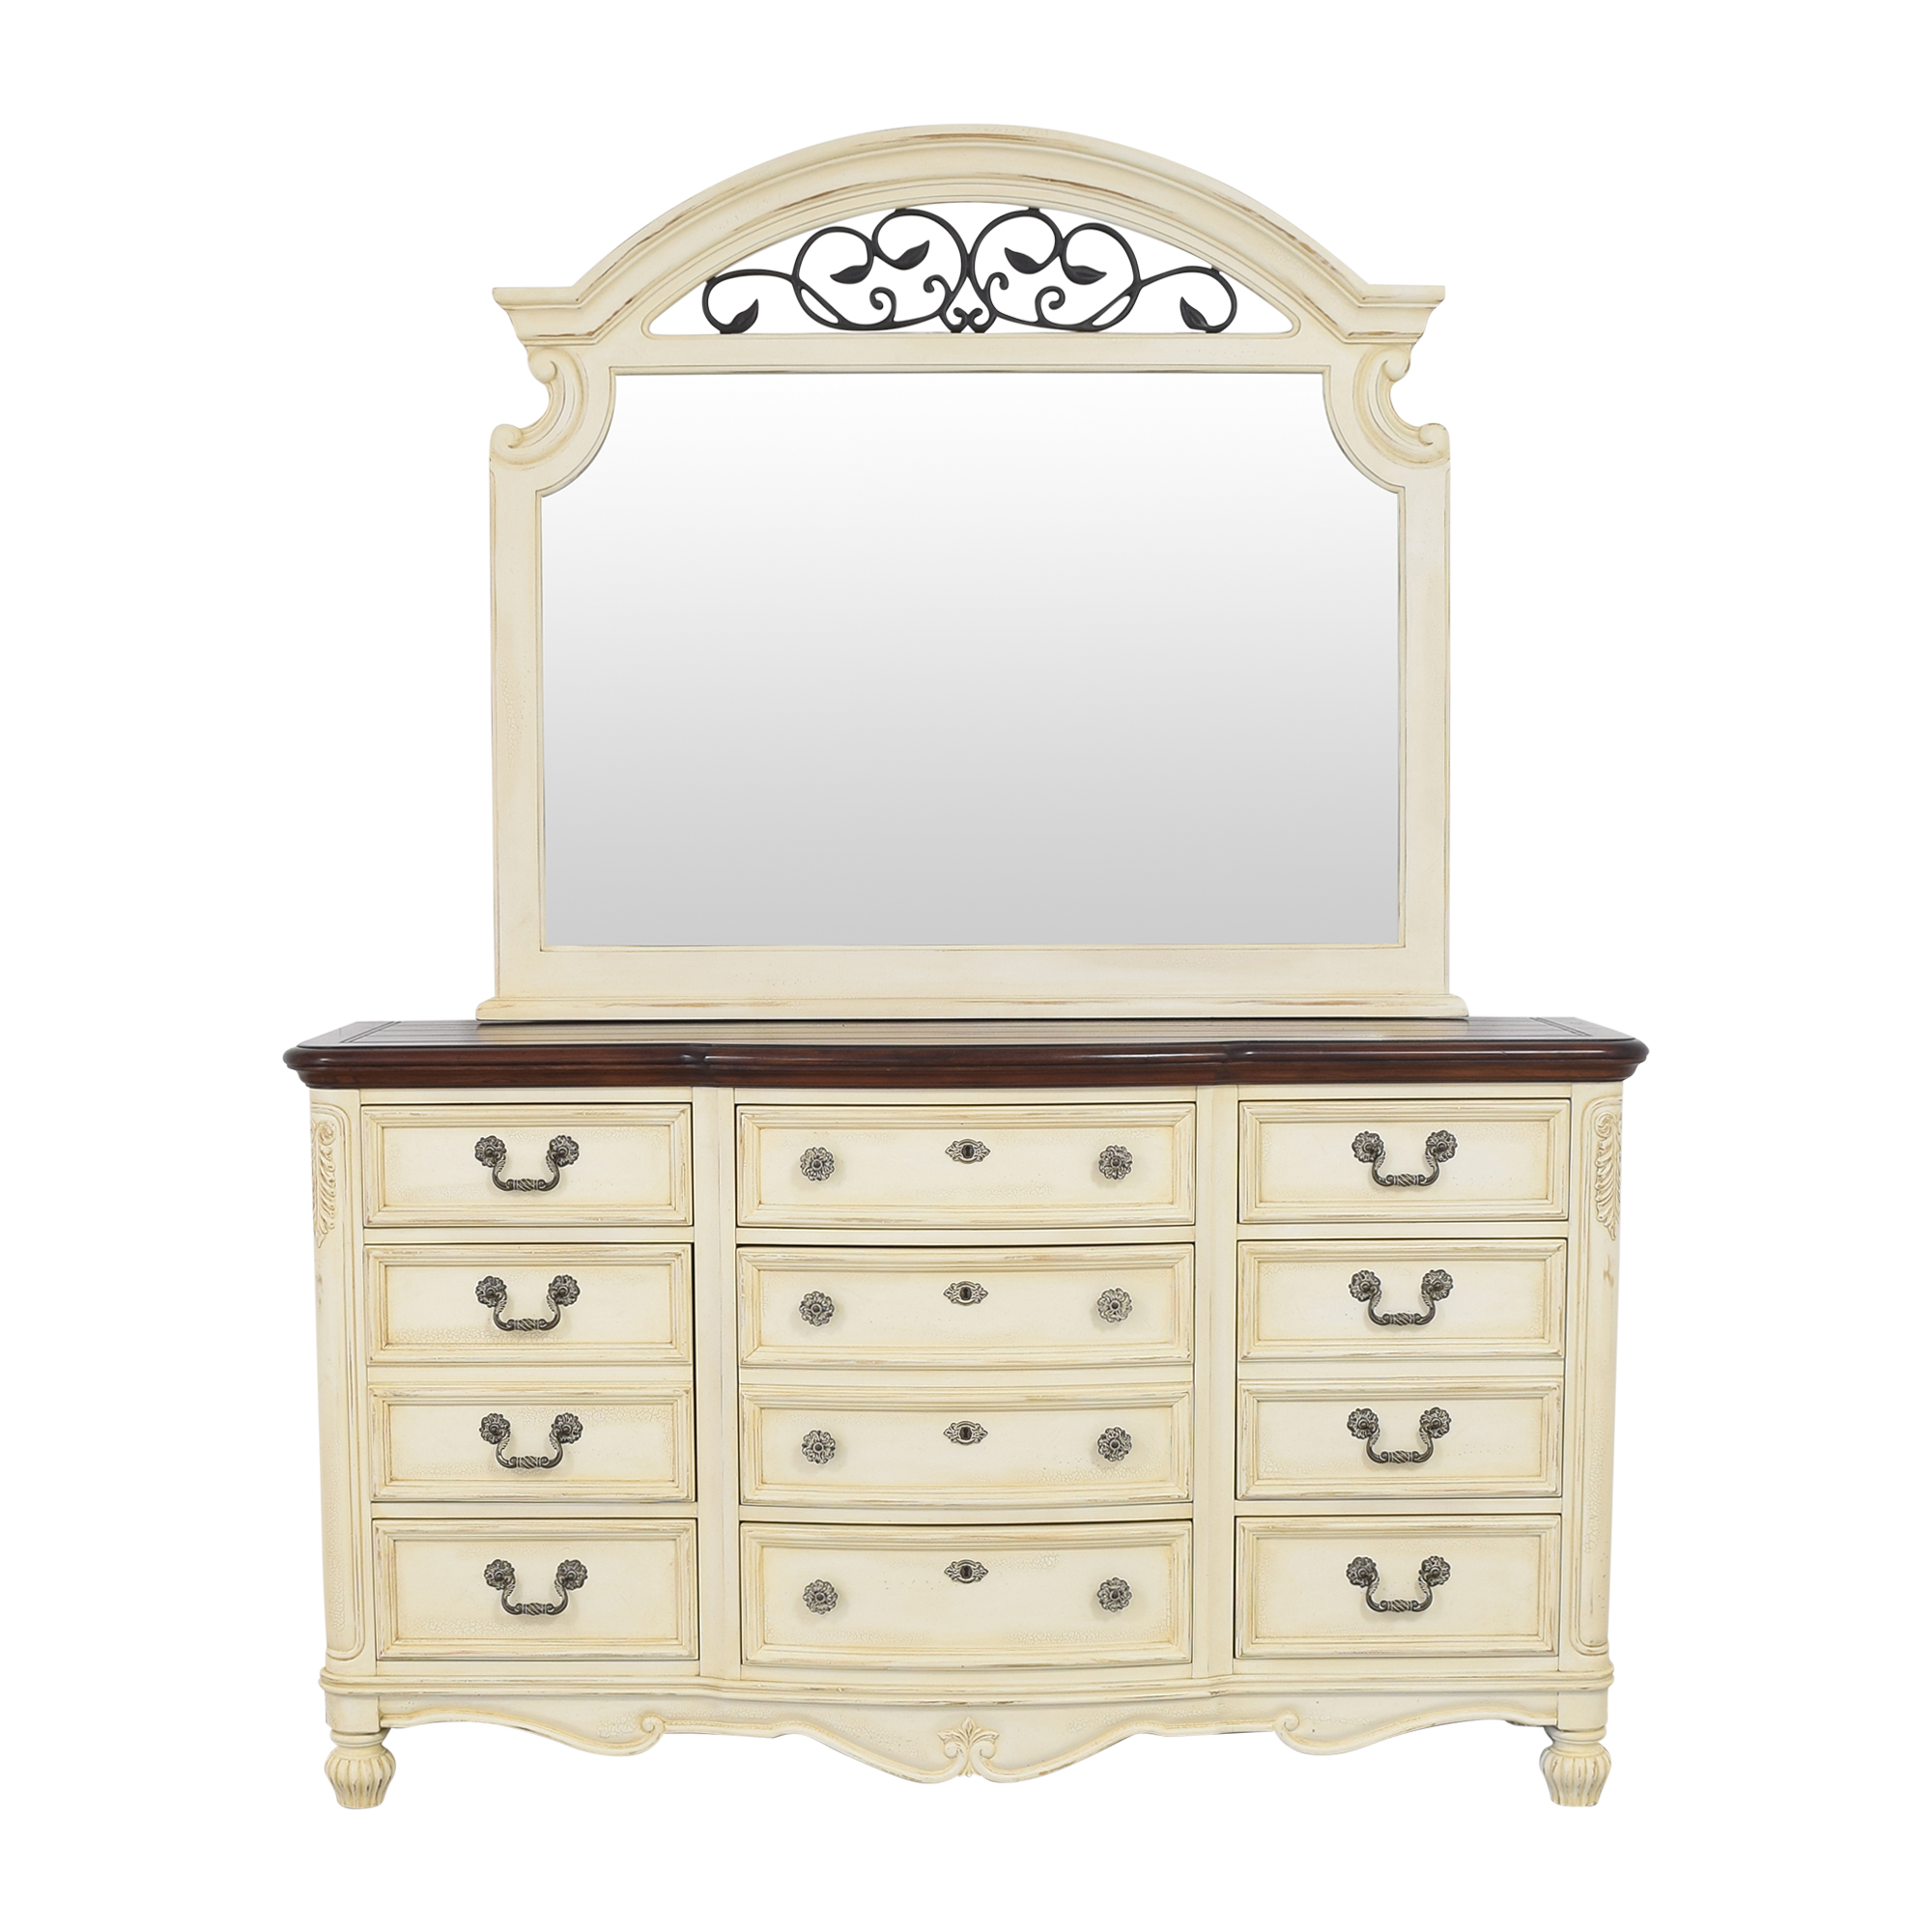 Thomasville Thomasville Triple Dresser and Mirror used